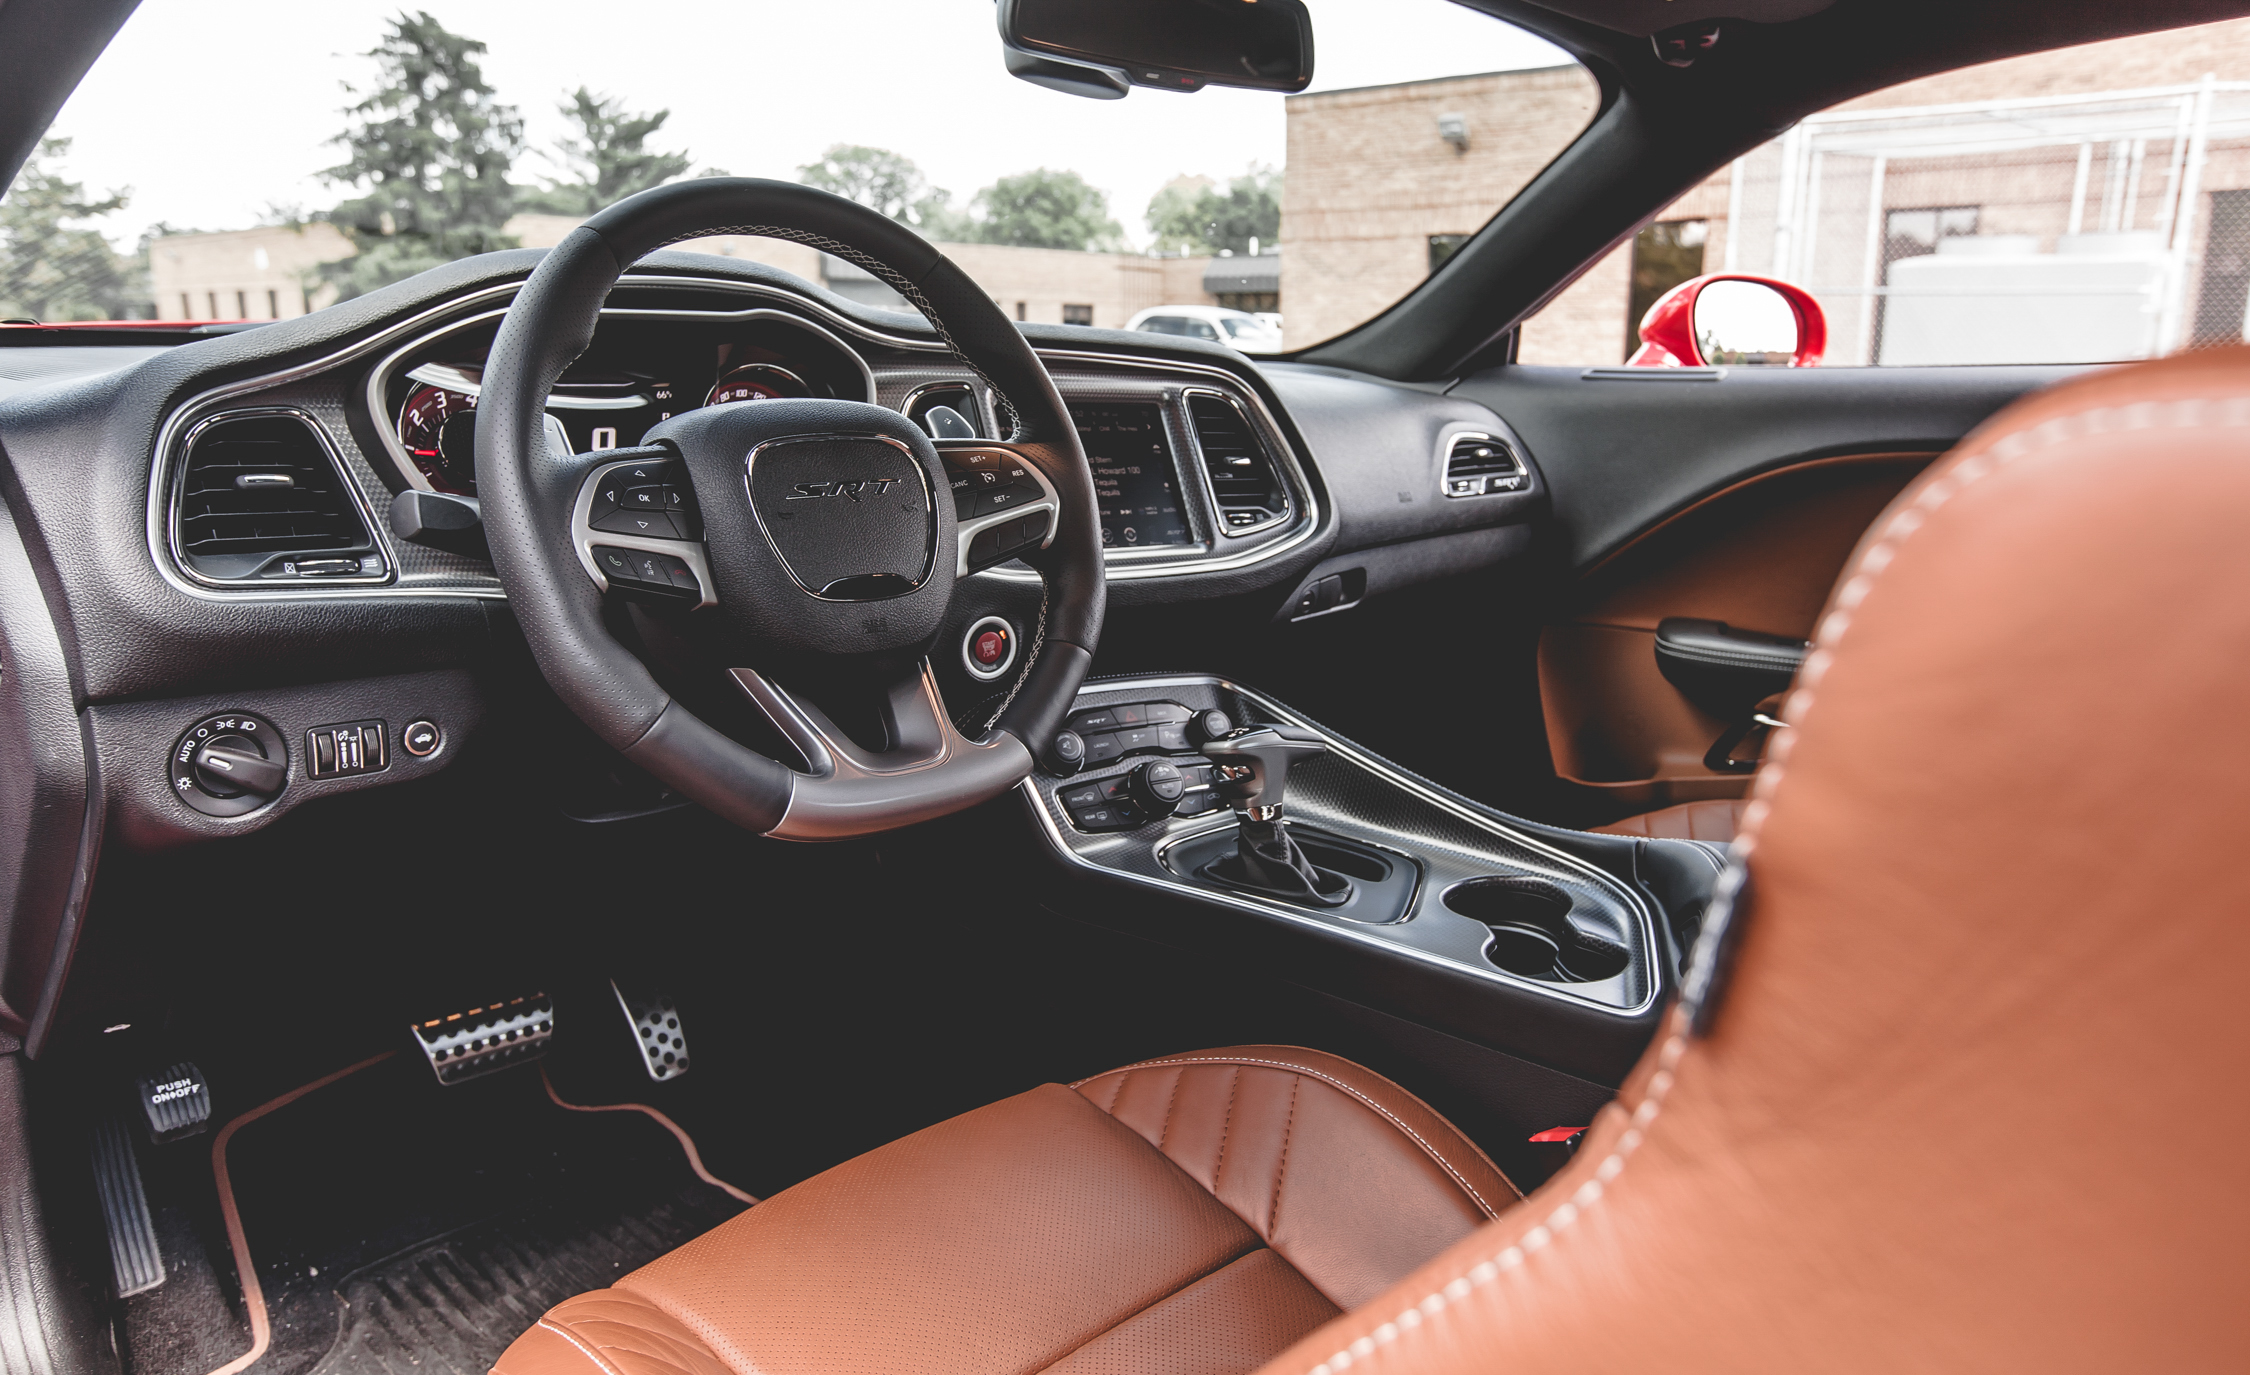 2015 Dodge Challenger SRT Hellcat Interior Cockpit